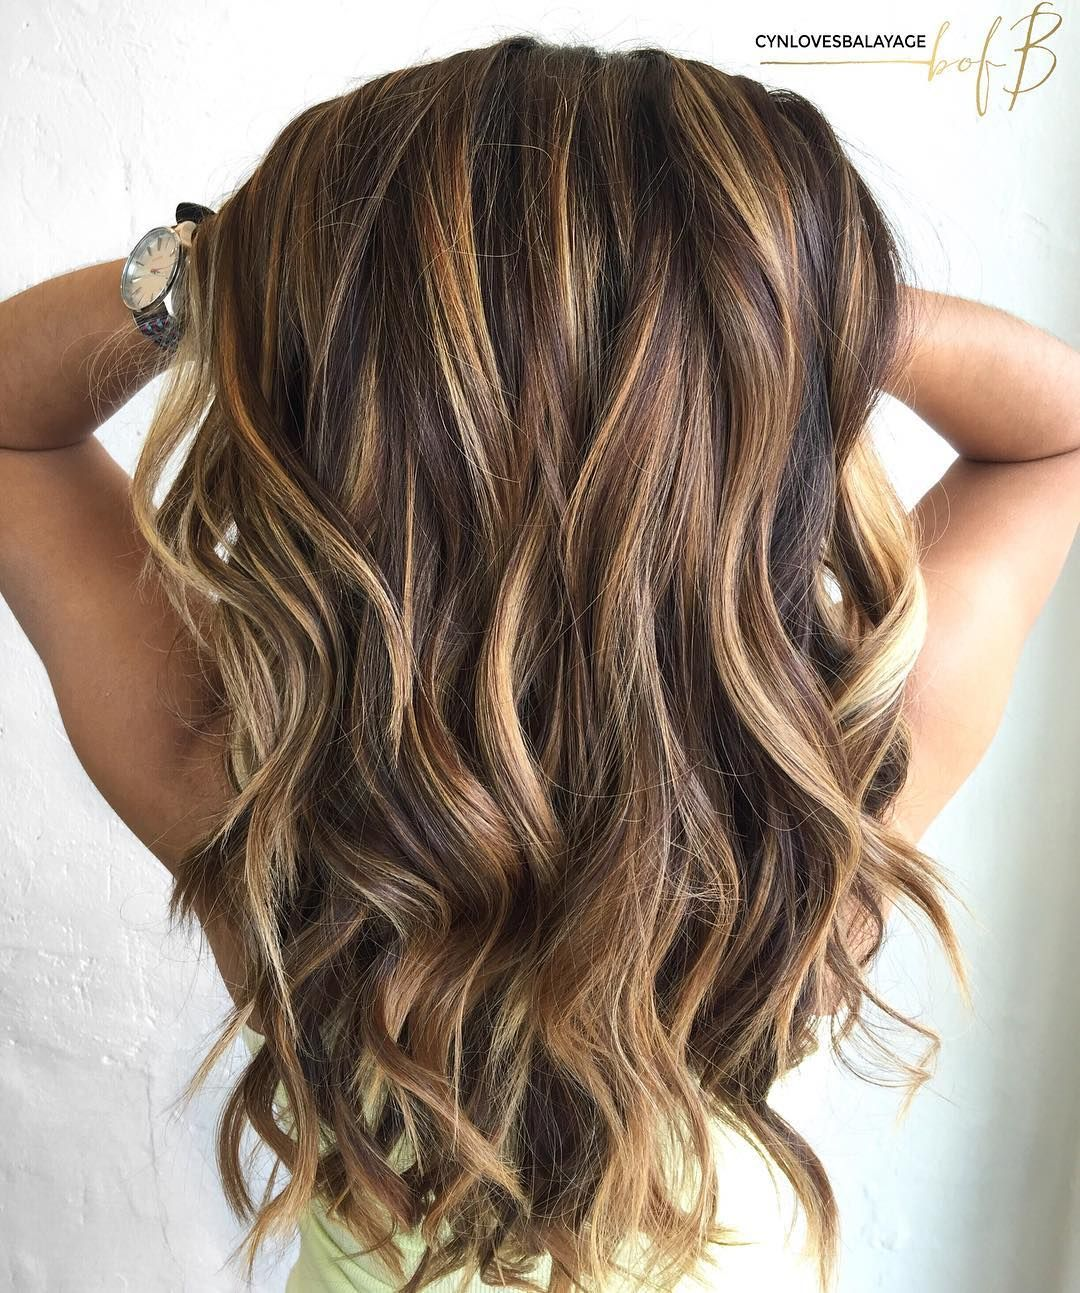 12 Looks with Caramel Highlights on Brown and Dark Brown Hair